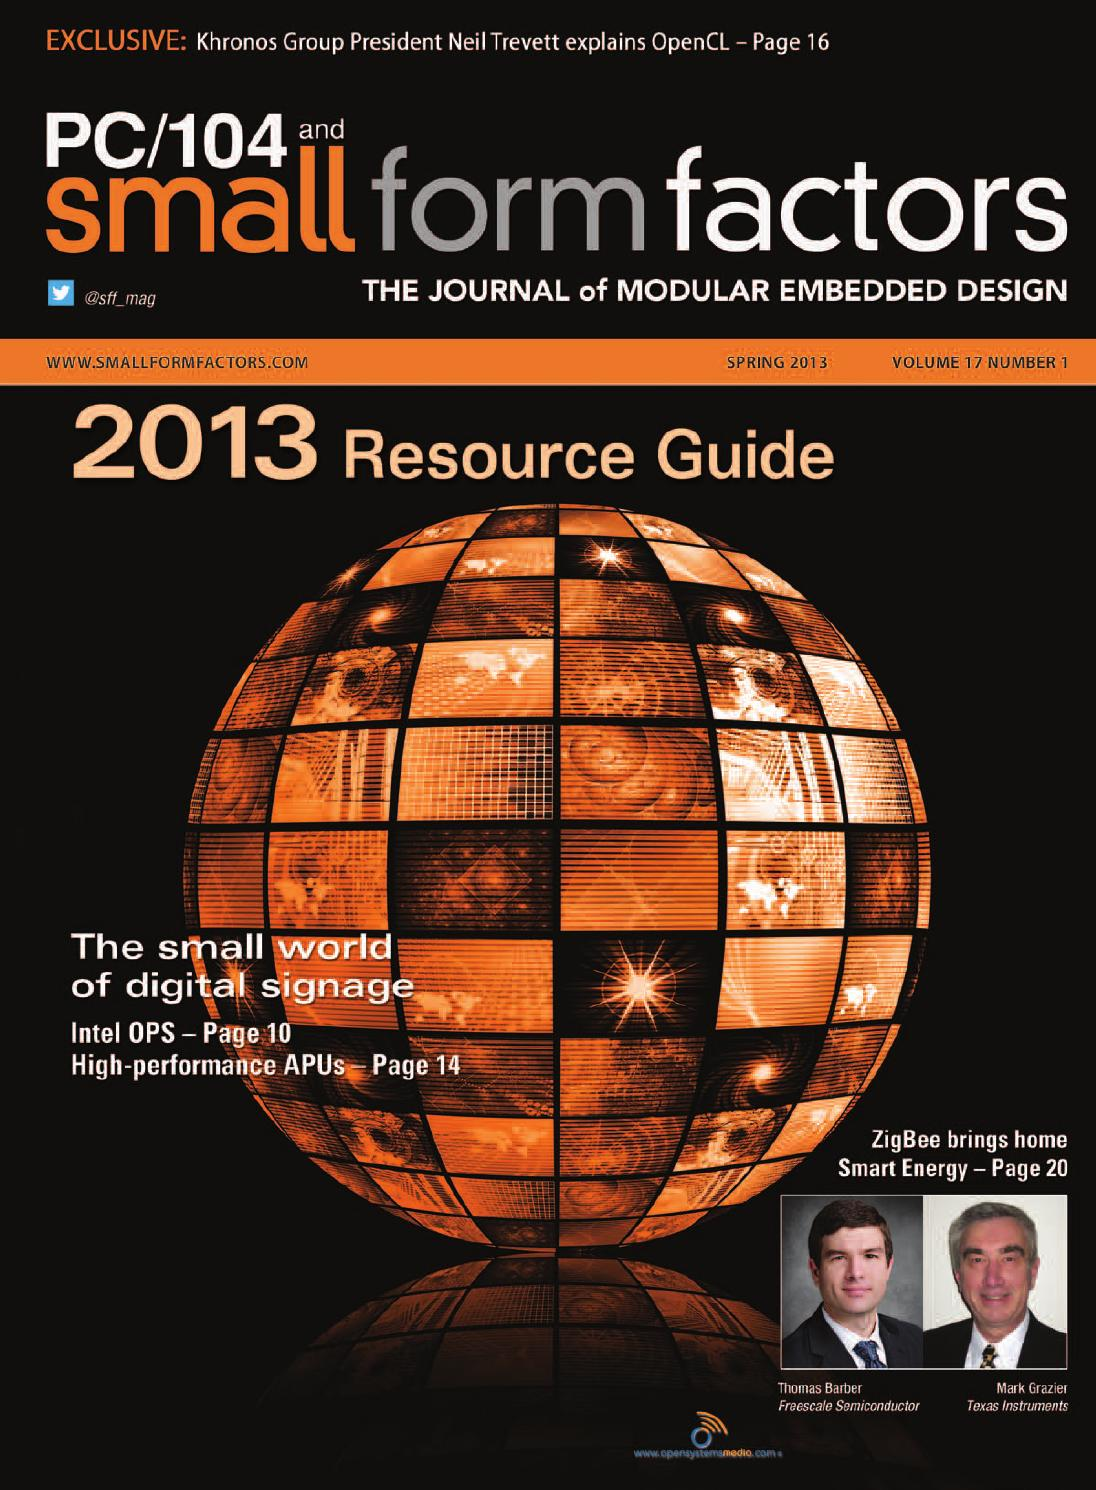 PC/104 and Small Form Factors Spring 2013 Resource Guide by